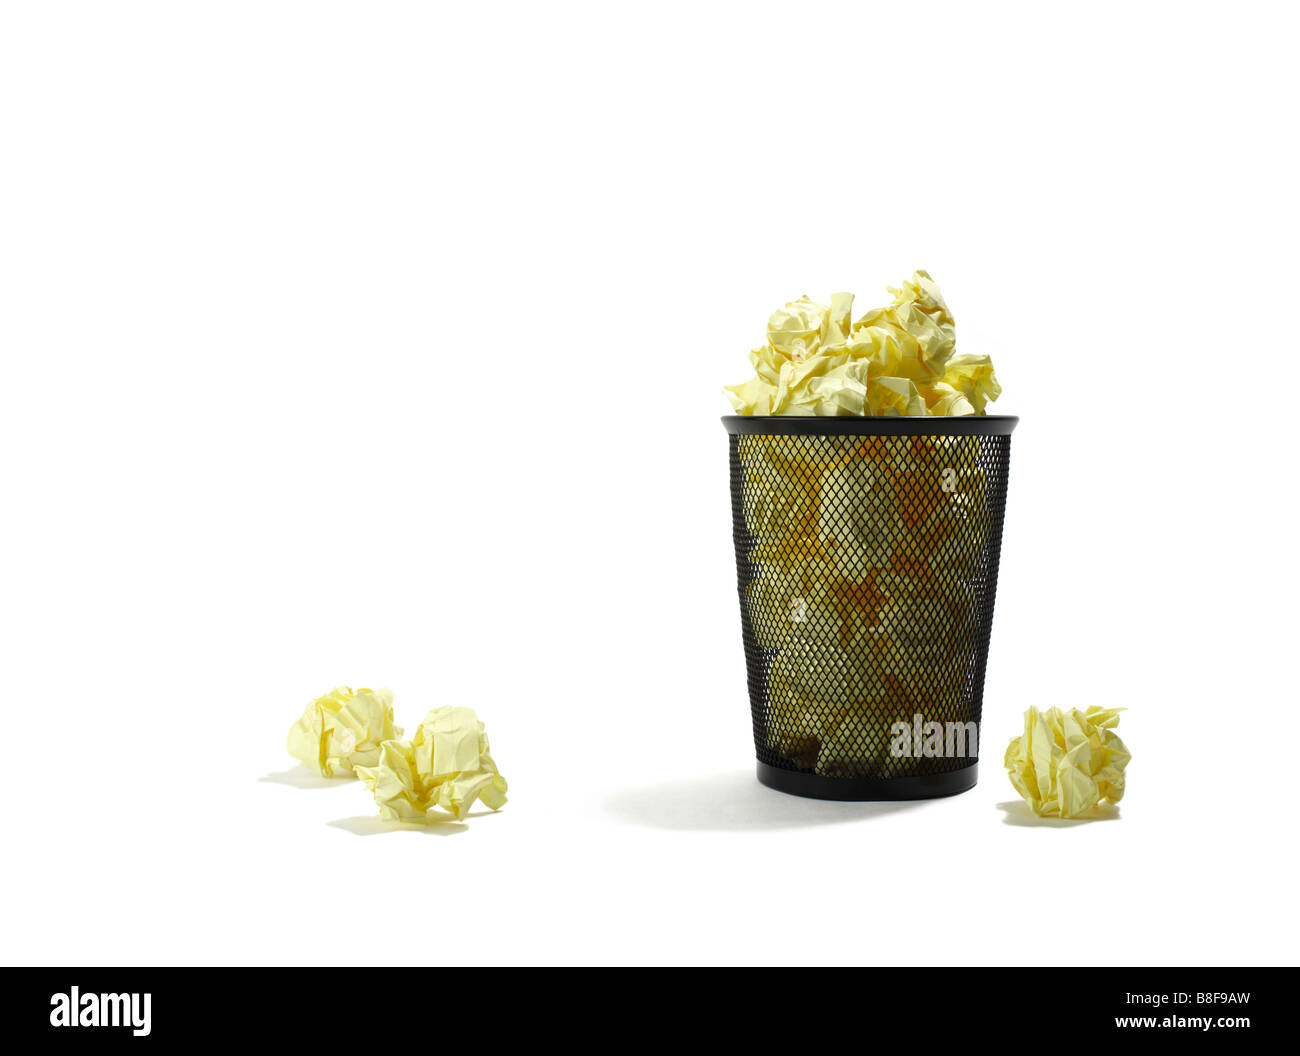 Overflowing Trash Can - Stock Image